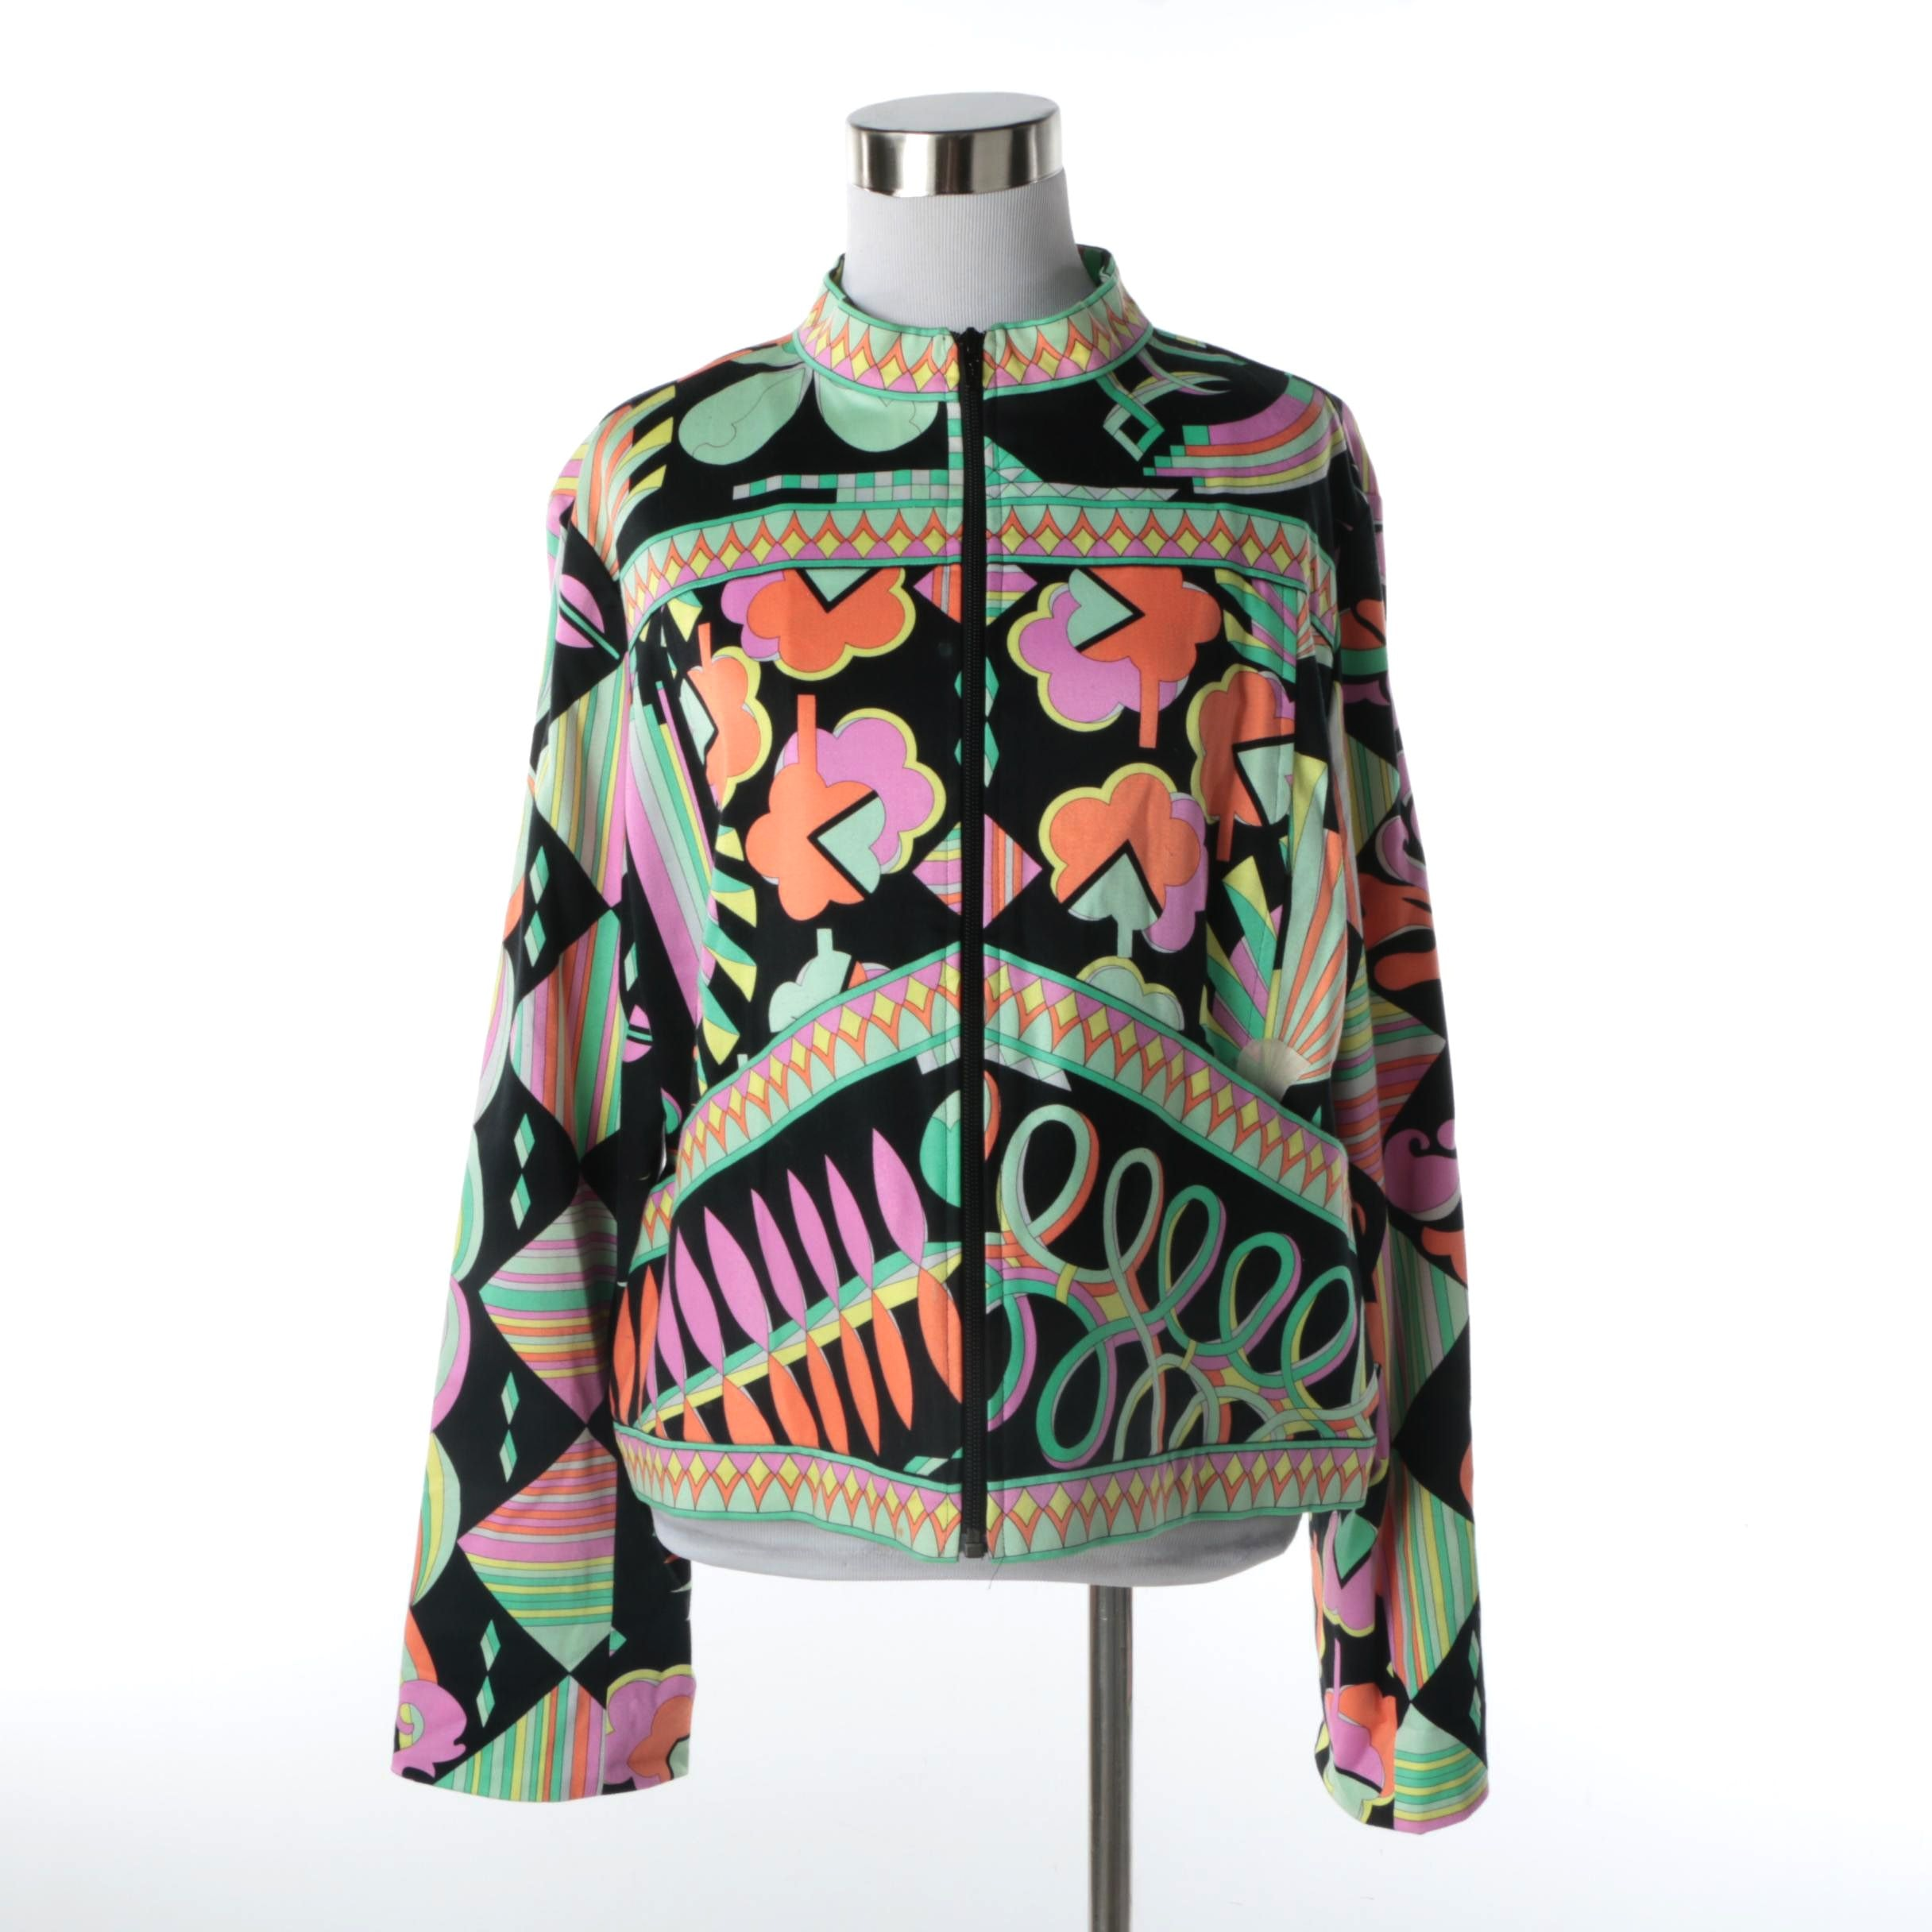 Women's Averardo Bessi Multicolored Cotton Blend Jacket